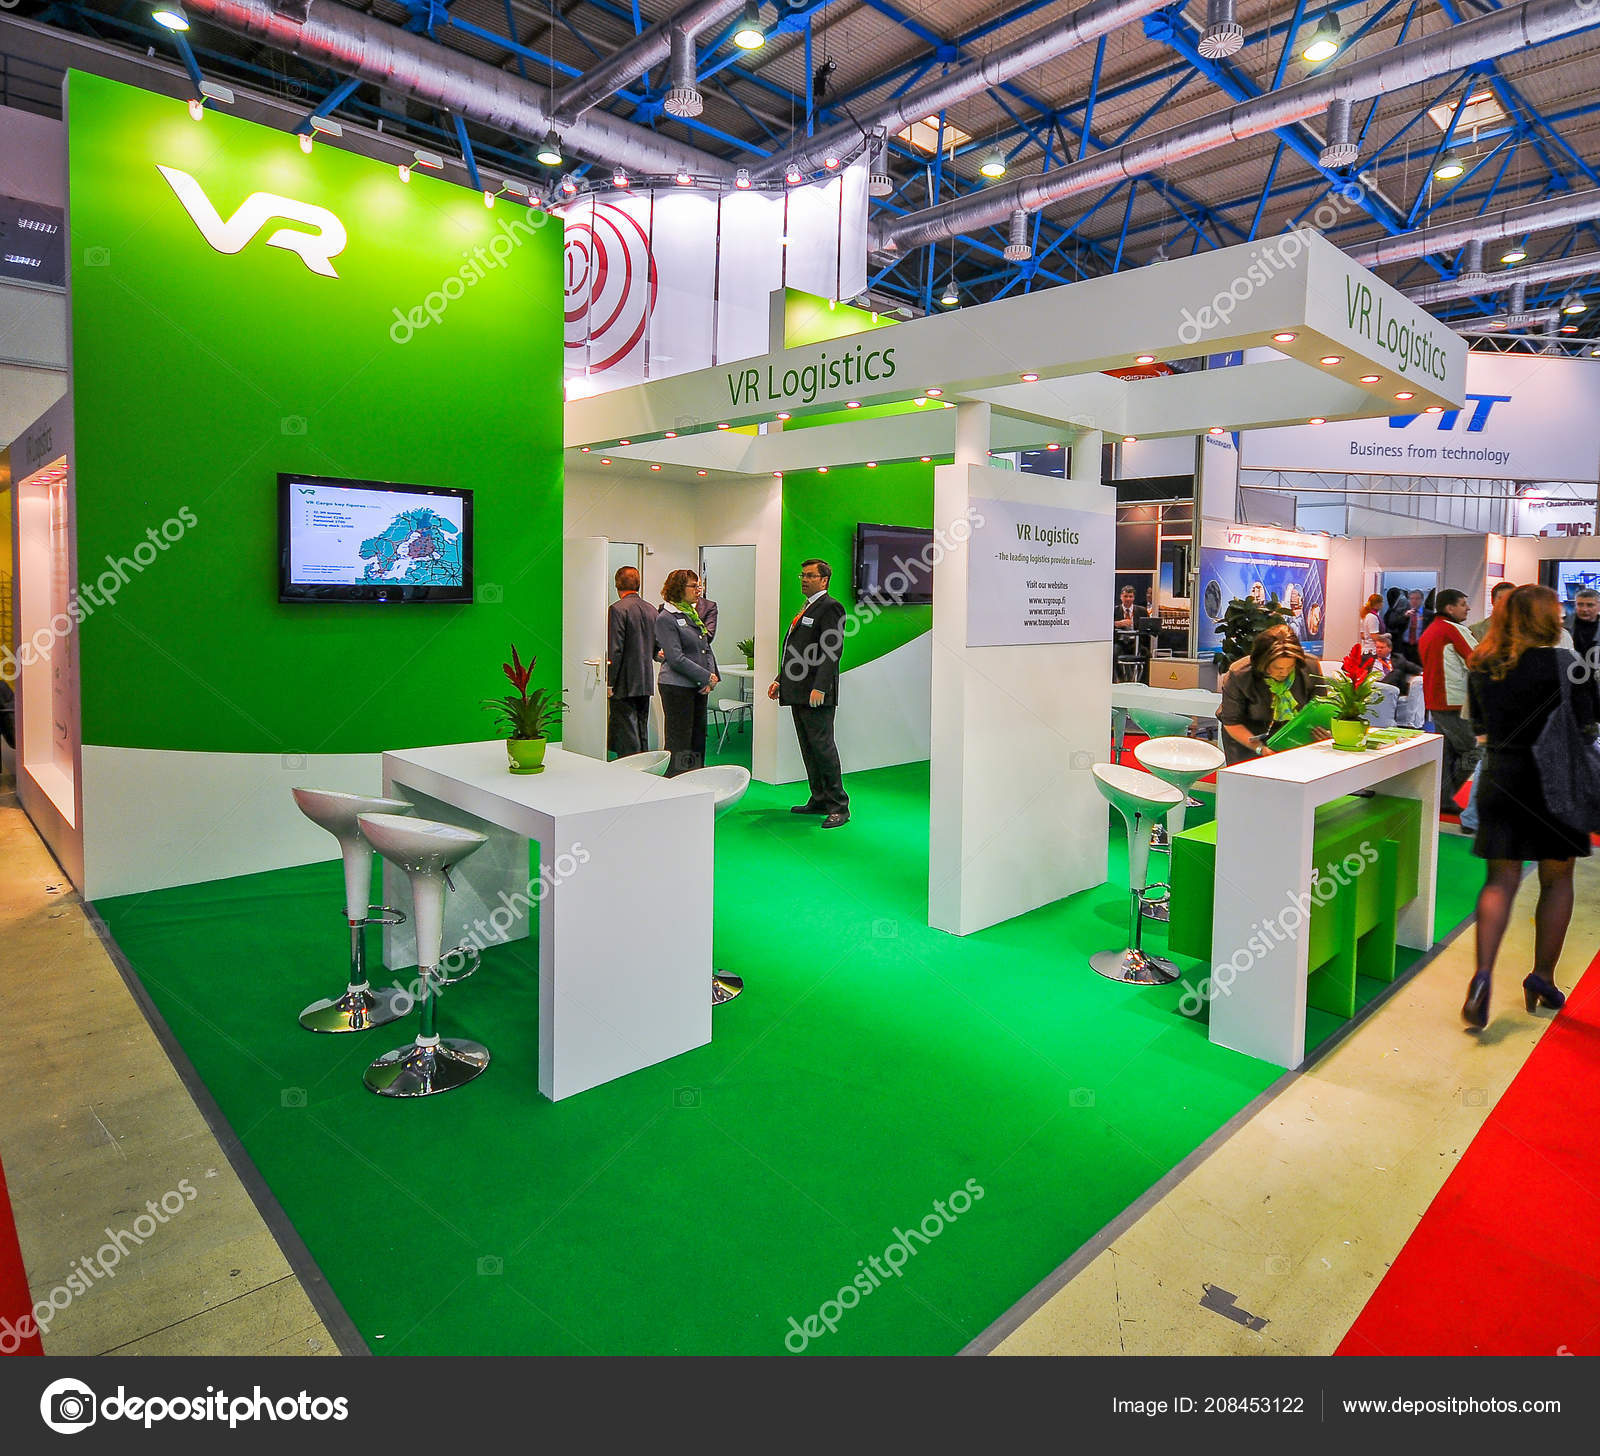 Exhibition Booth Photography : Logistics booth transrussia 2010 transport exhibition moscow russia